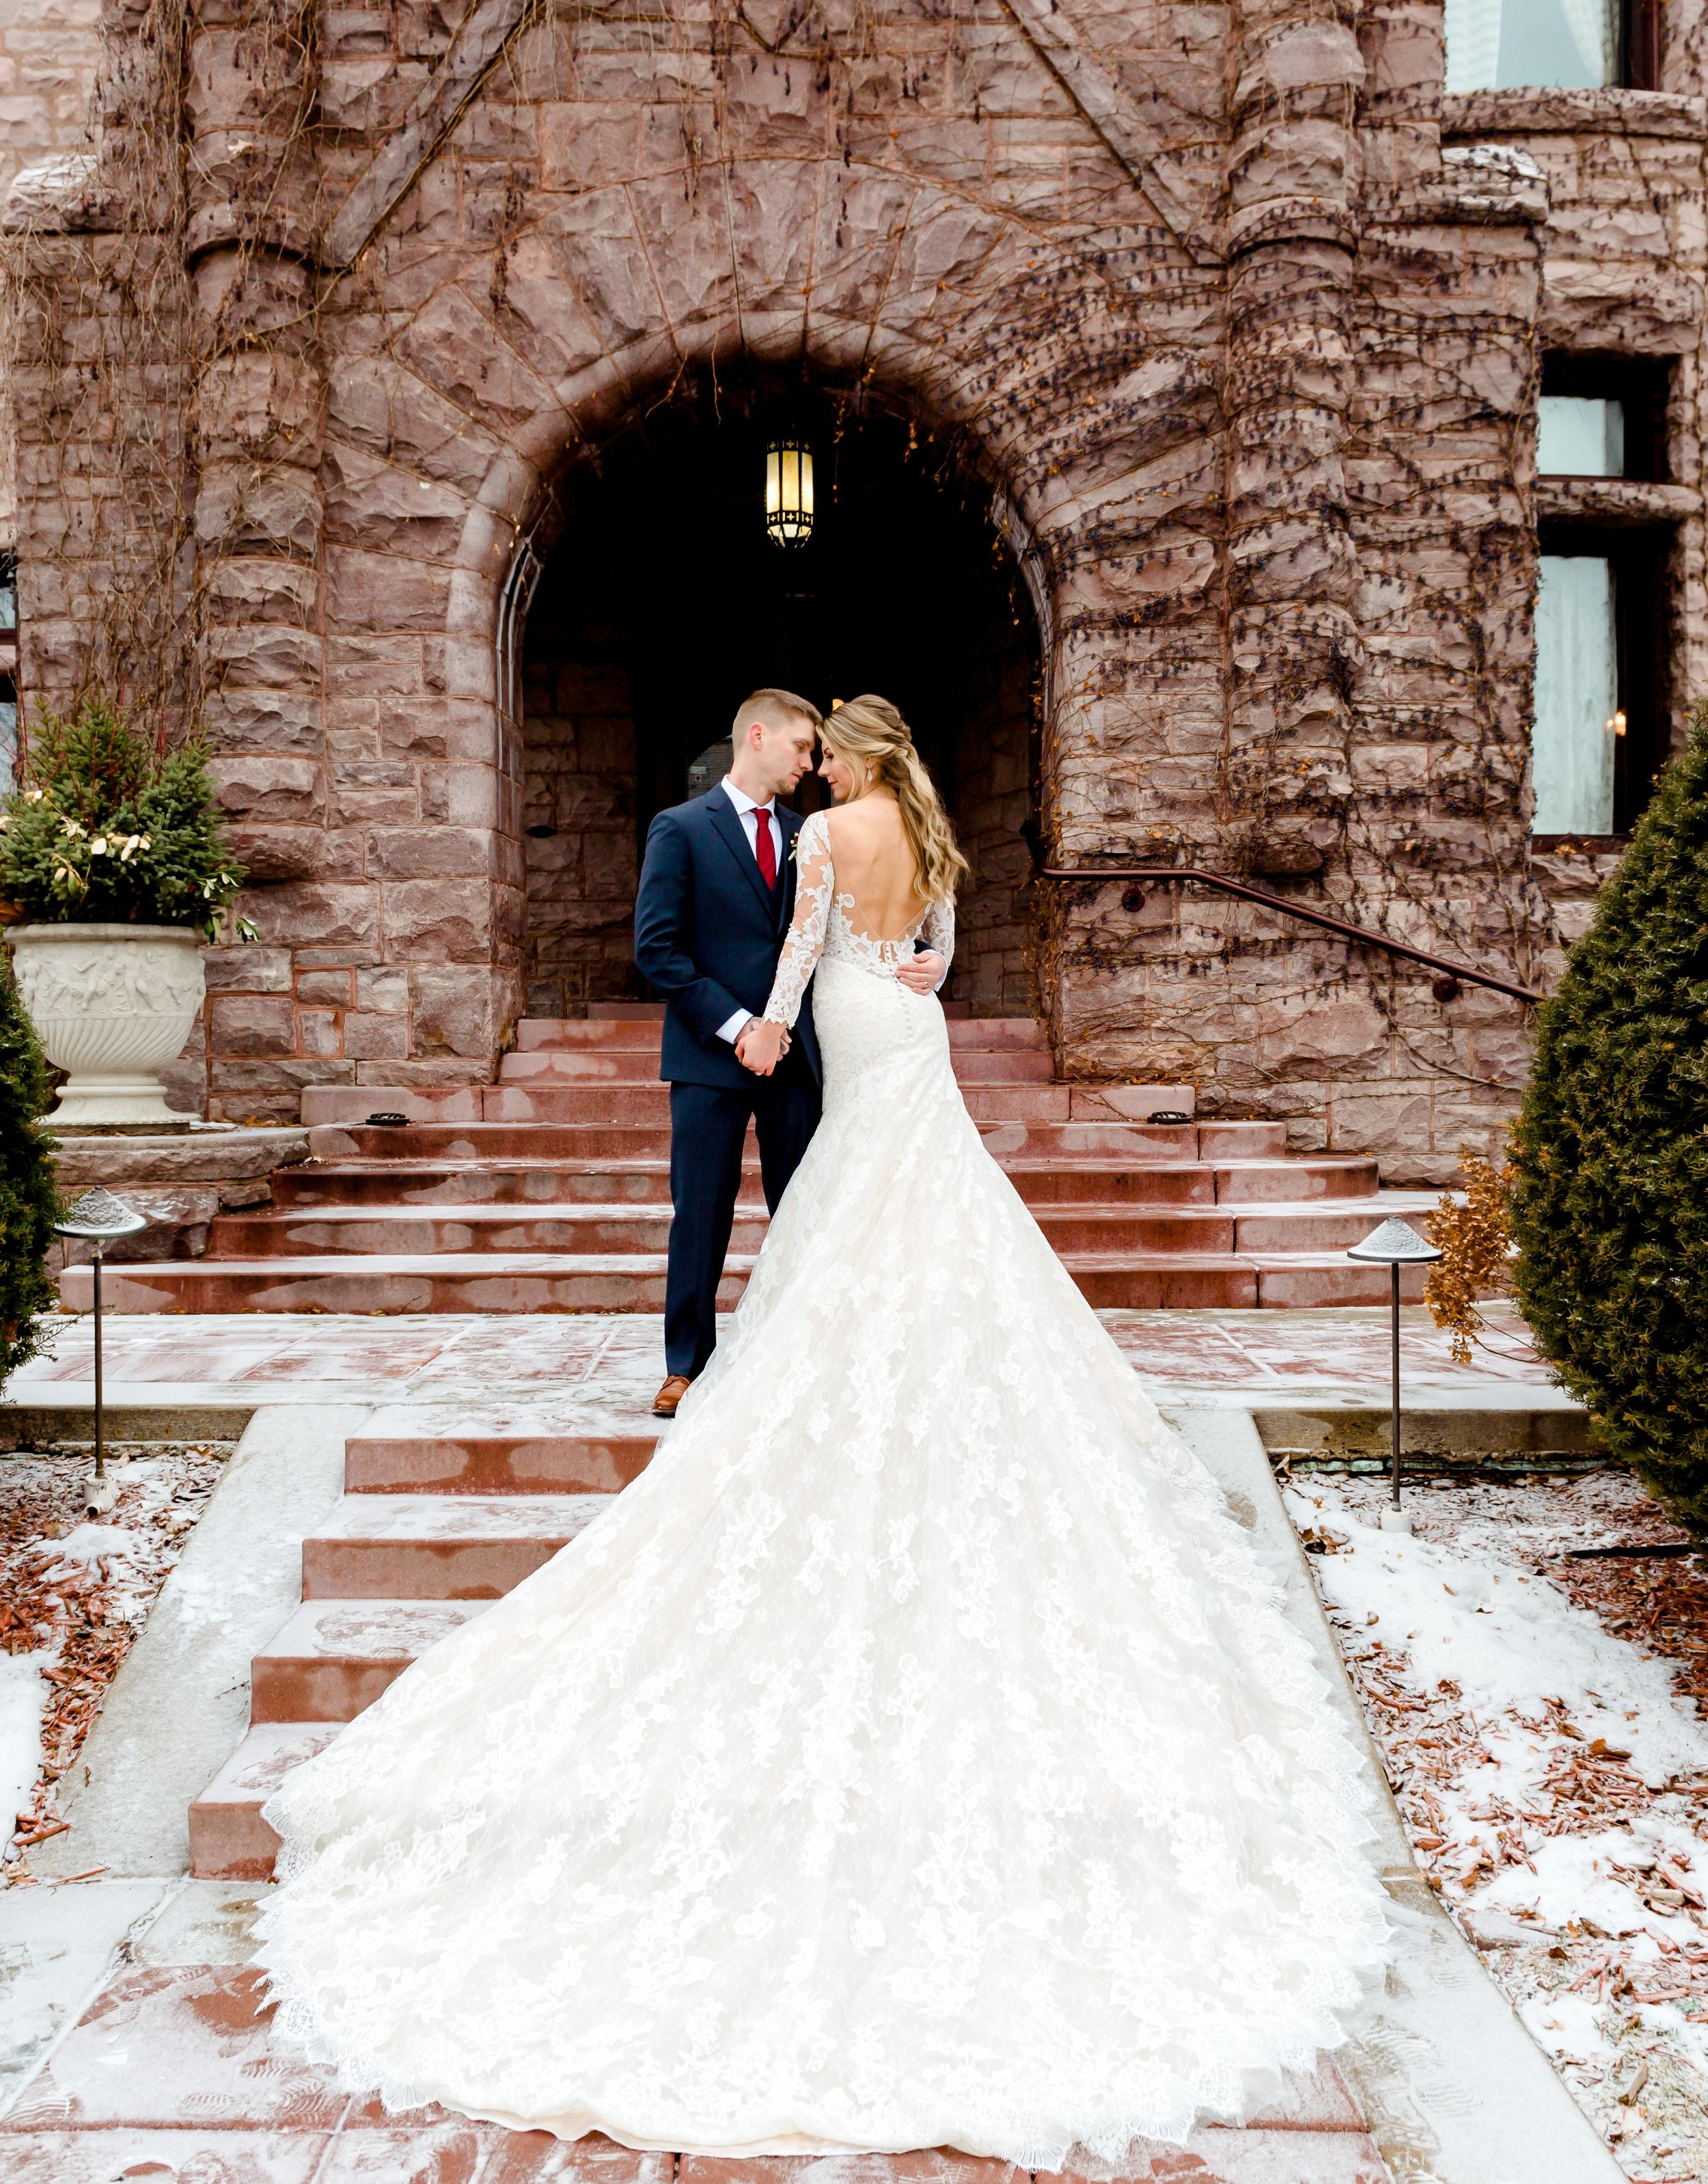 Van Dusen Mansion Castle Wedding - Romantic Princess Wedding Photos in Minneapolis - Best MN Wedding Photographer